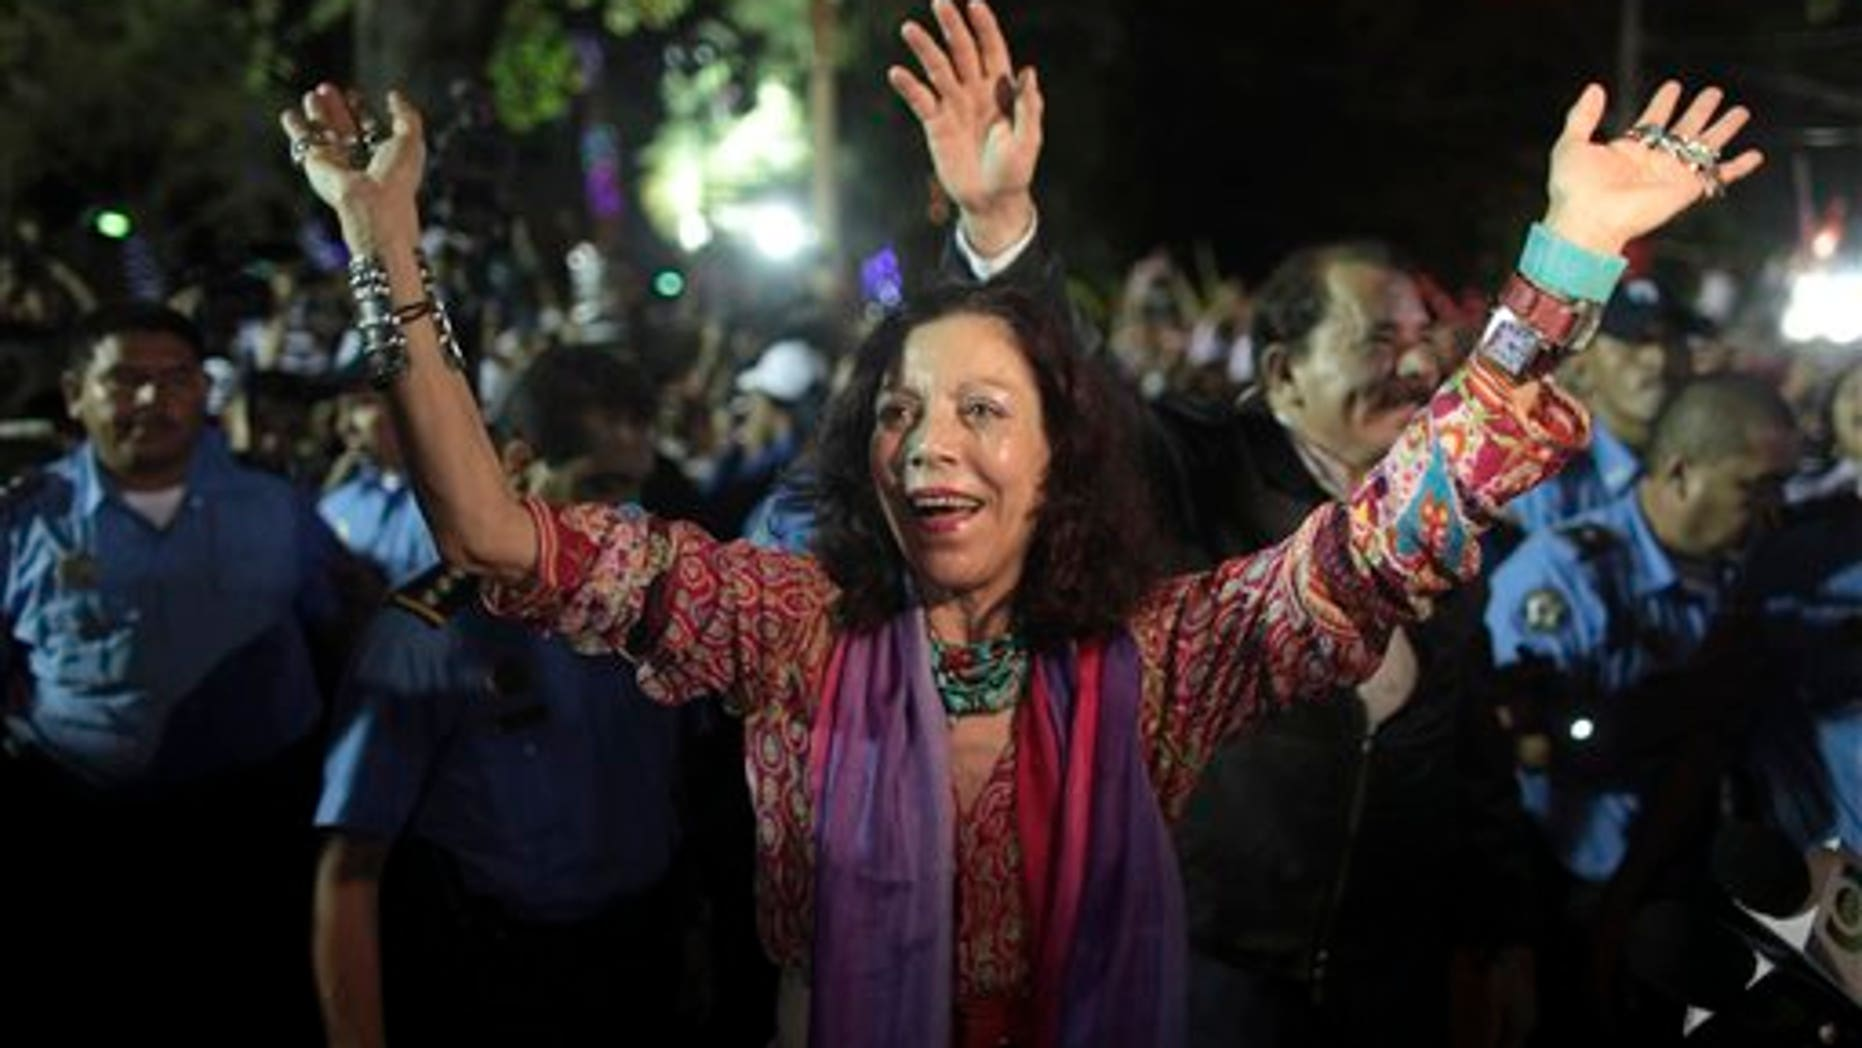 FILE - In this Nov. 8, 2011 file photo, Nicaragua's first lady Rosario Murillo waves to supporters next to her husband, President Daniel Ortega, in Revolution Square in Managua, Nicaragua.